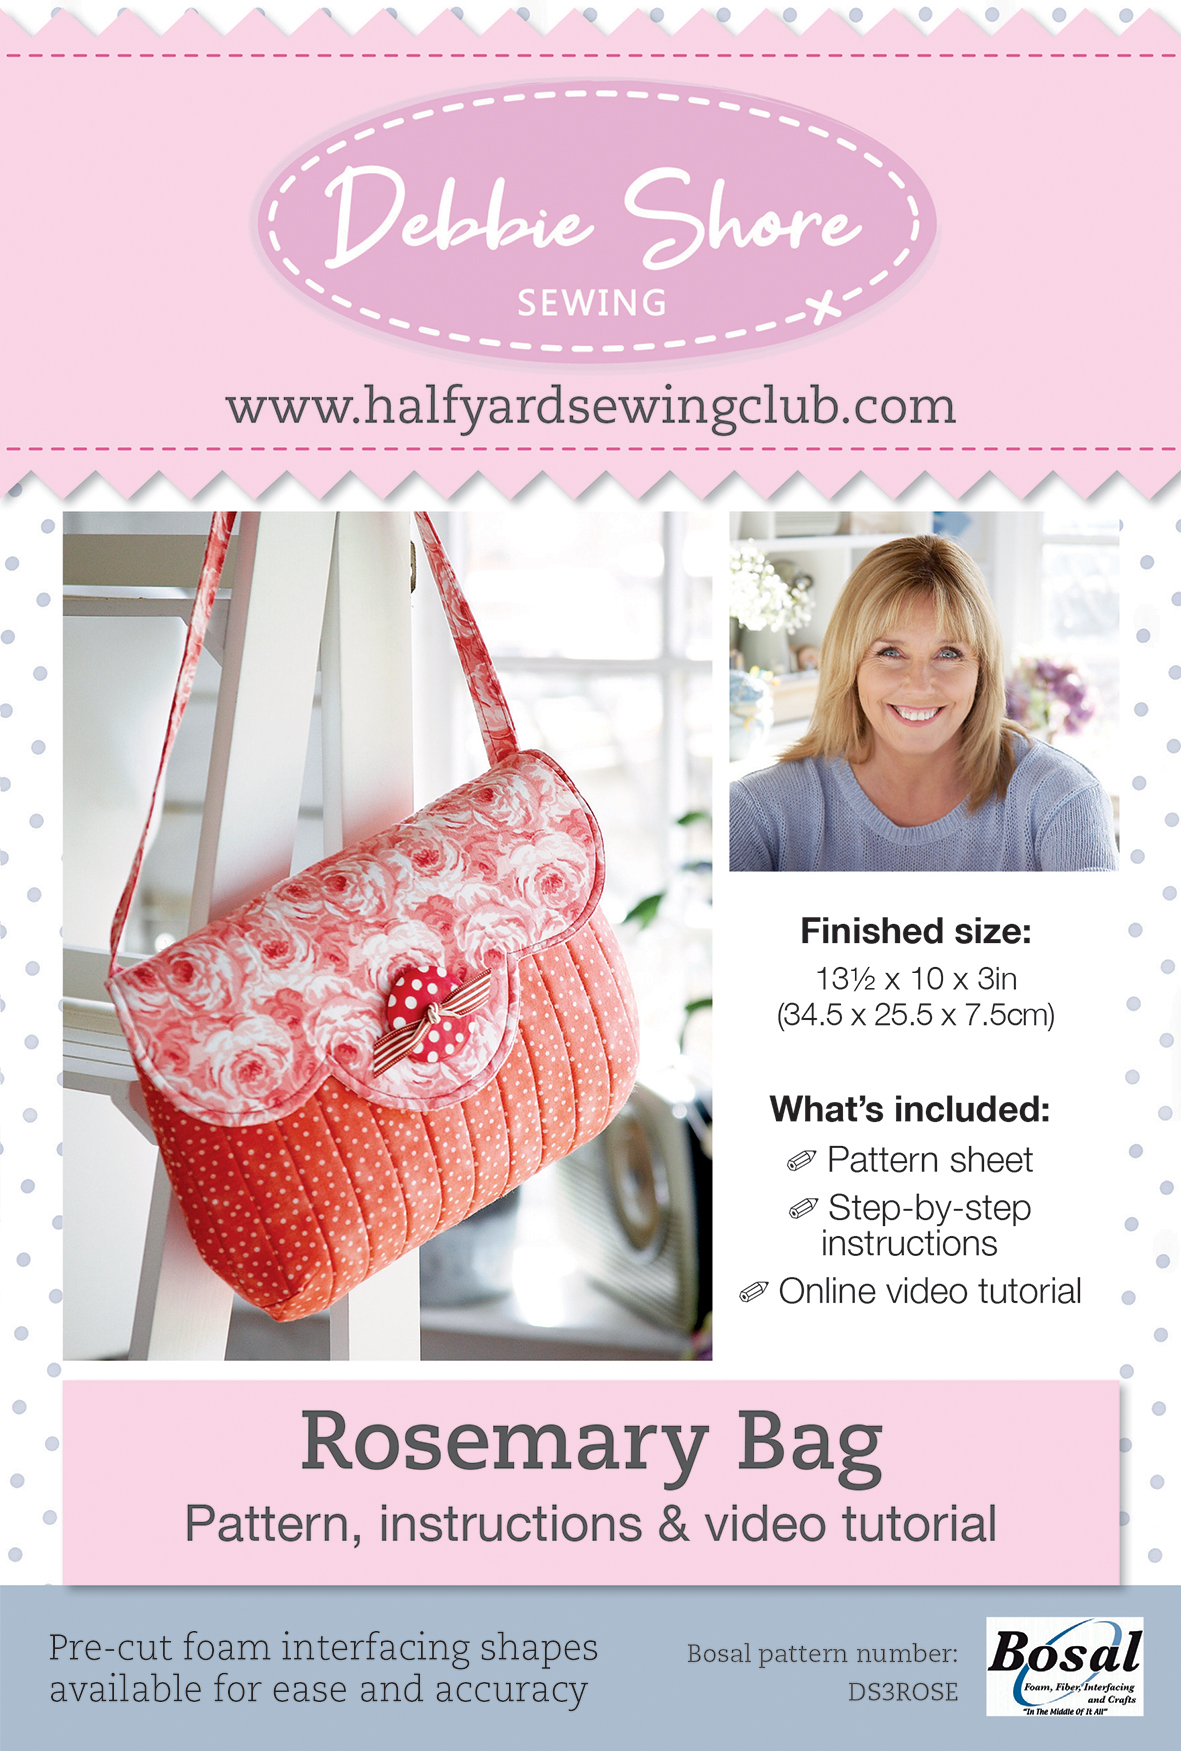 Search Press | Rosemary Bag by Debbie Shore